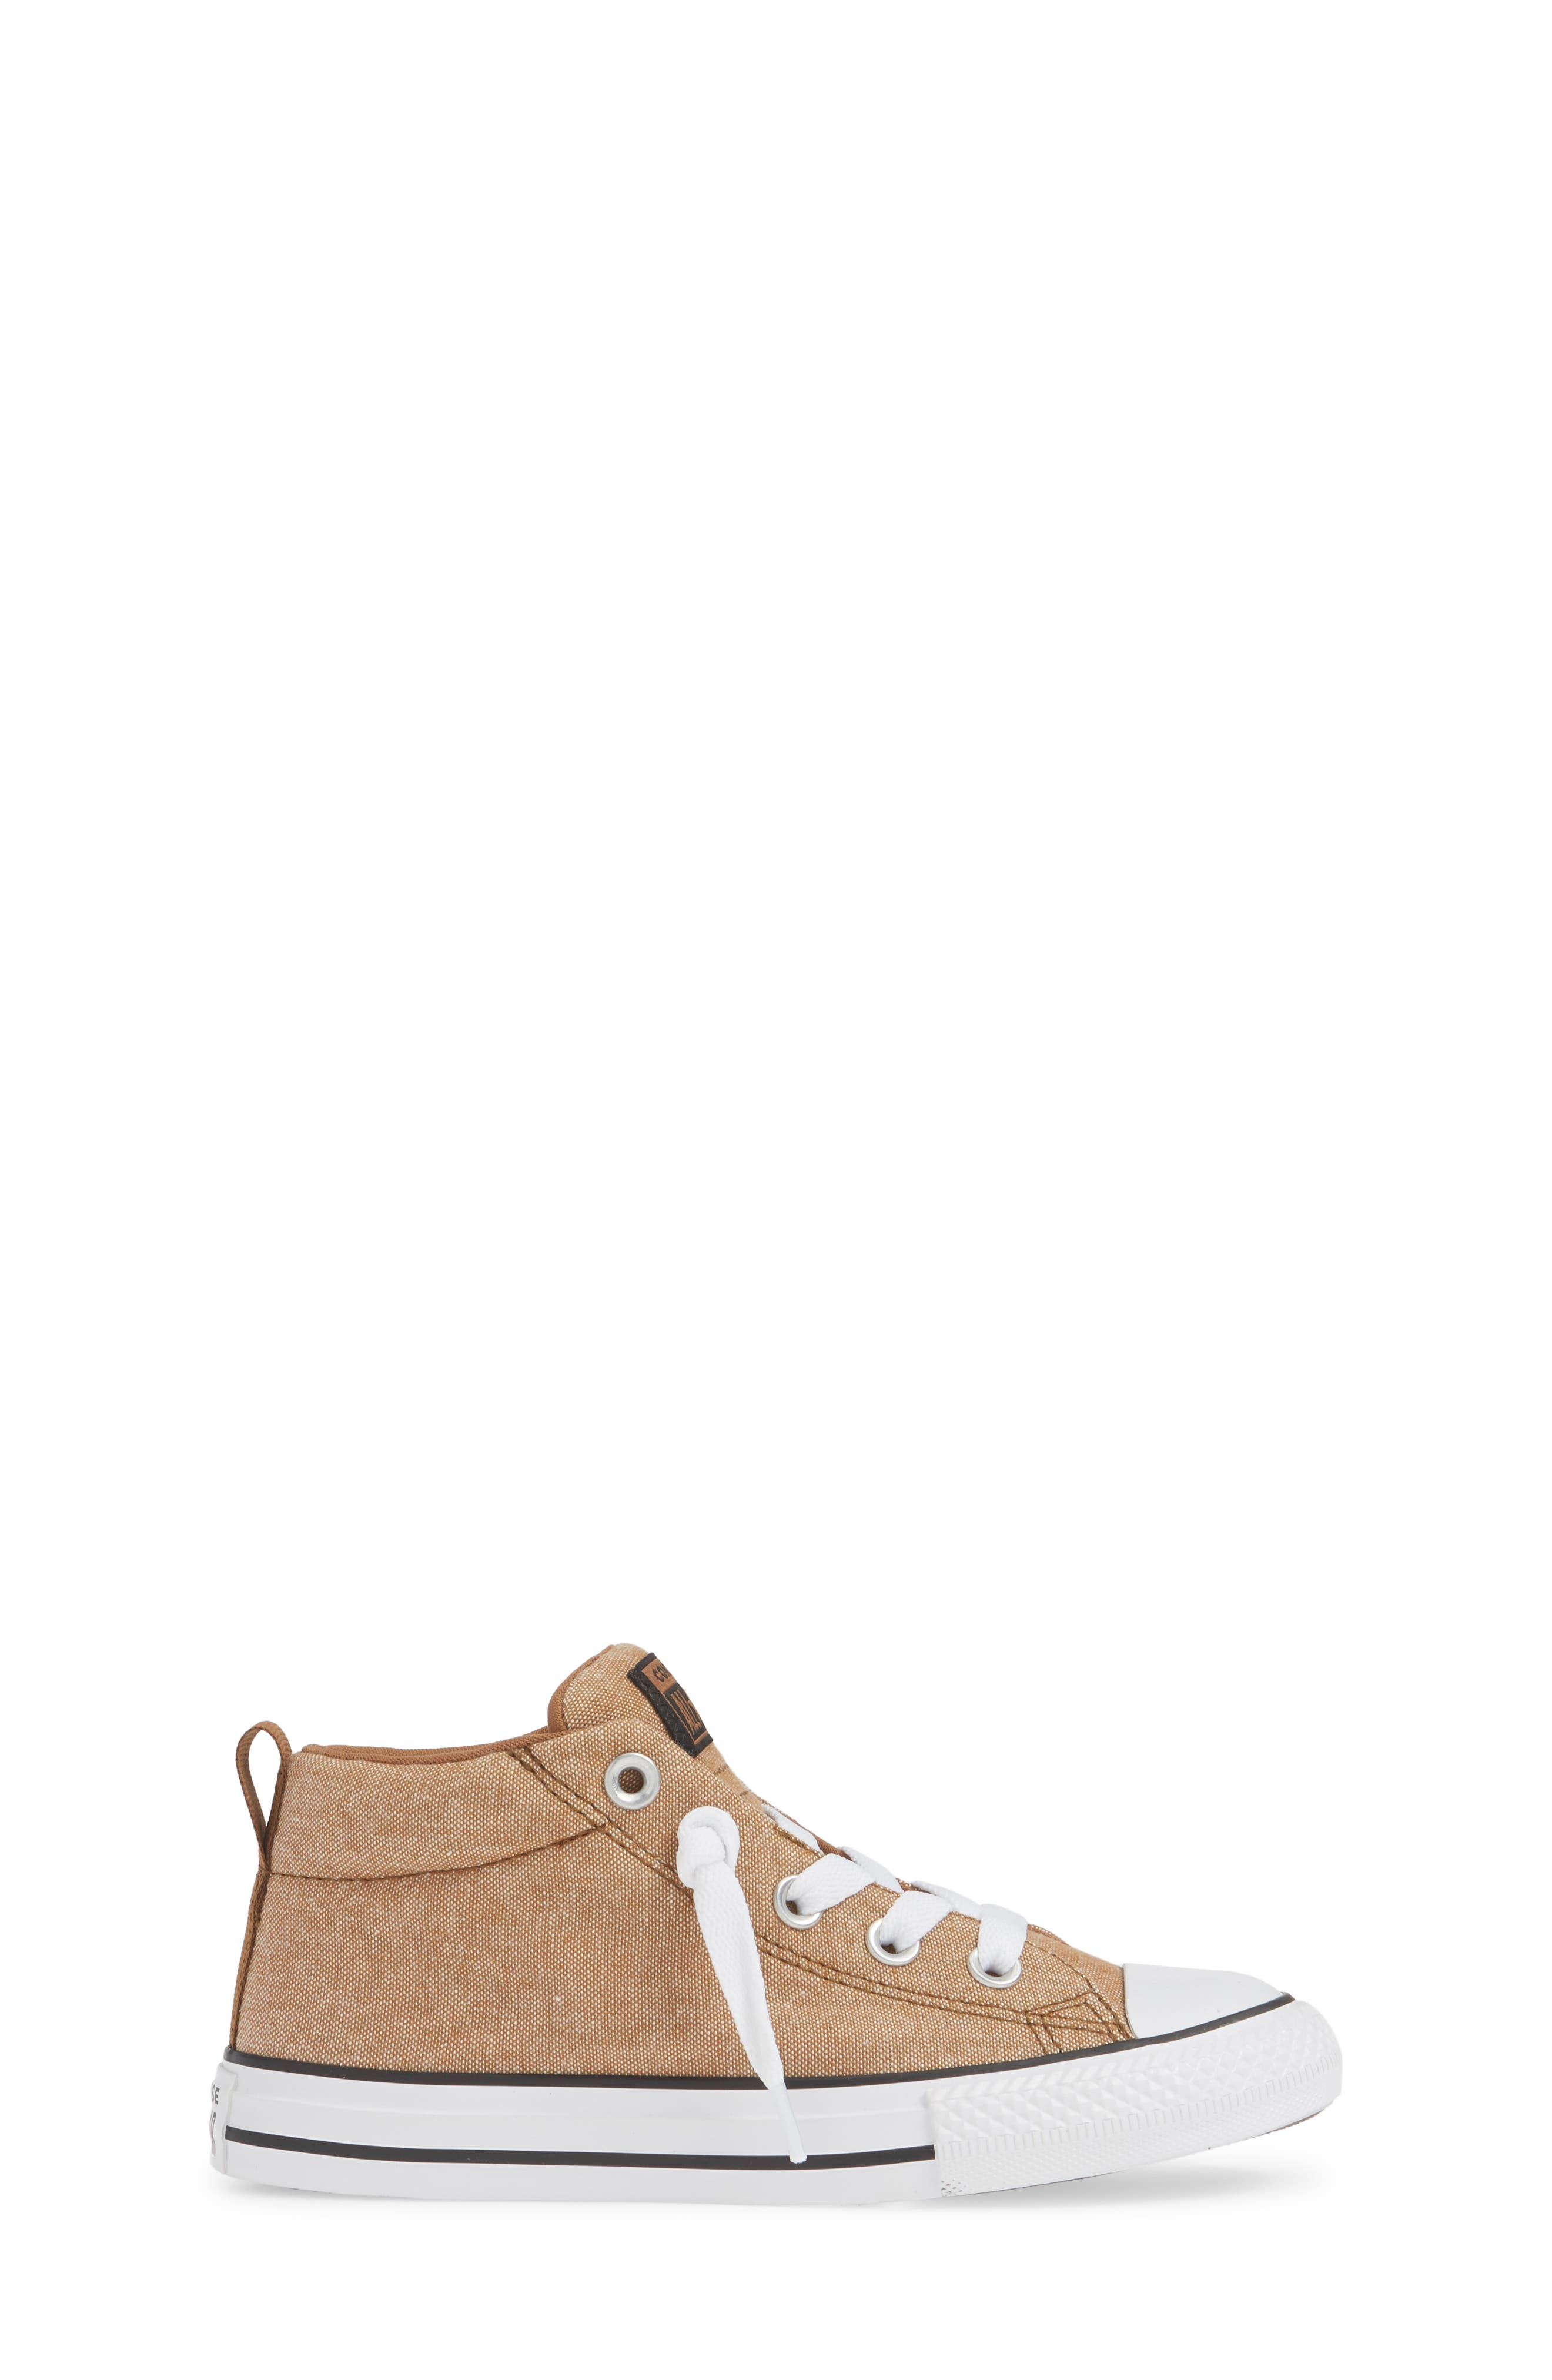 ,                             Chuck Taylor<sup>®</sup> All Star<sup>®</sup> Street Mid Top Sneaker,                             Alternate thumbnail 3, color,                             ALE BROWN/ BLACK/ WHITE